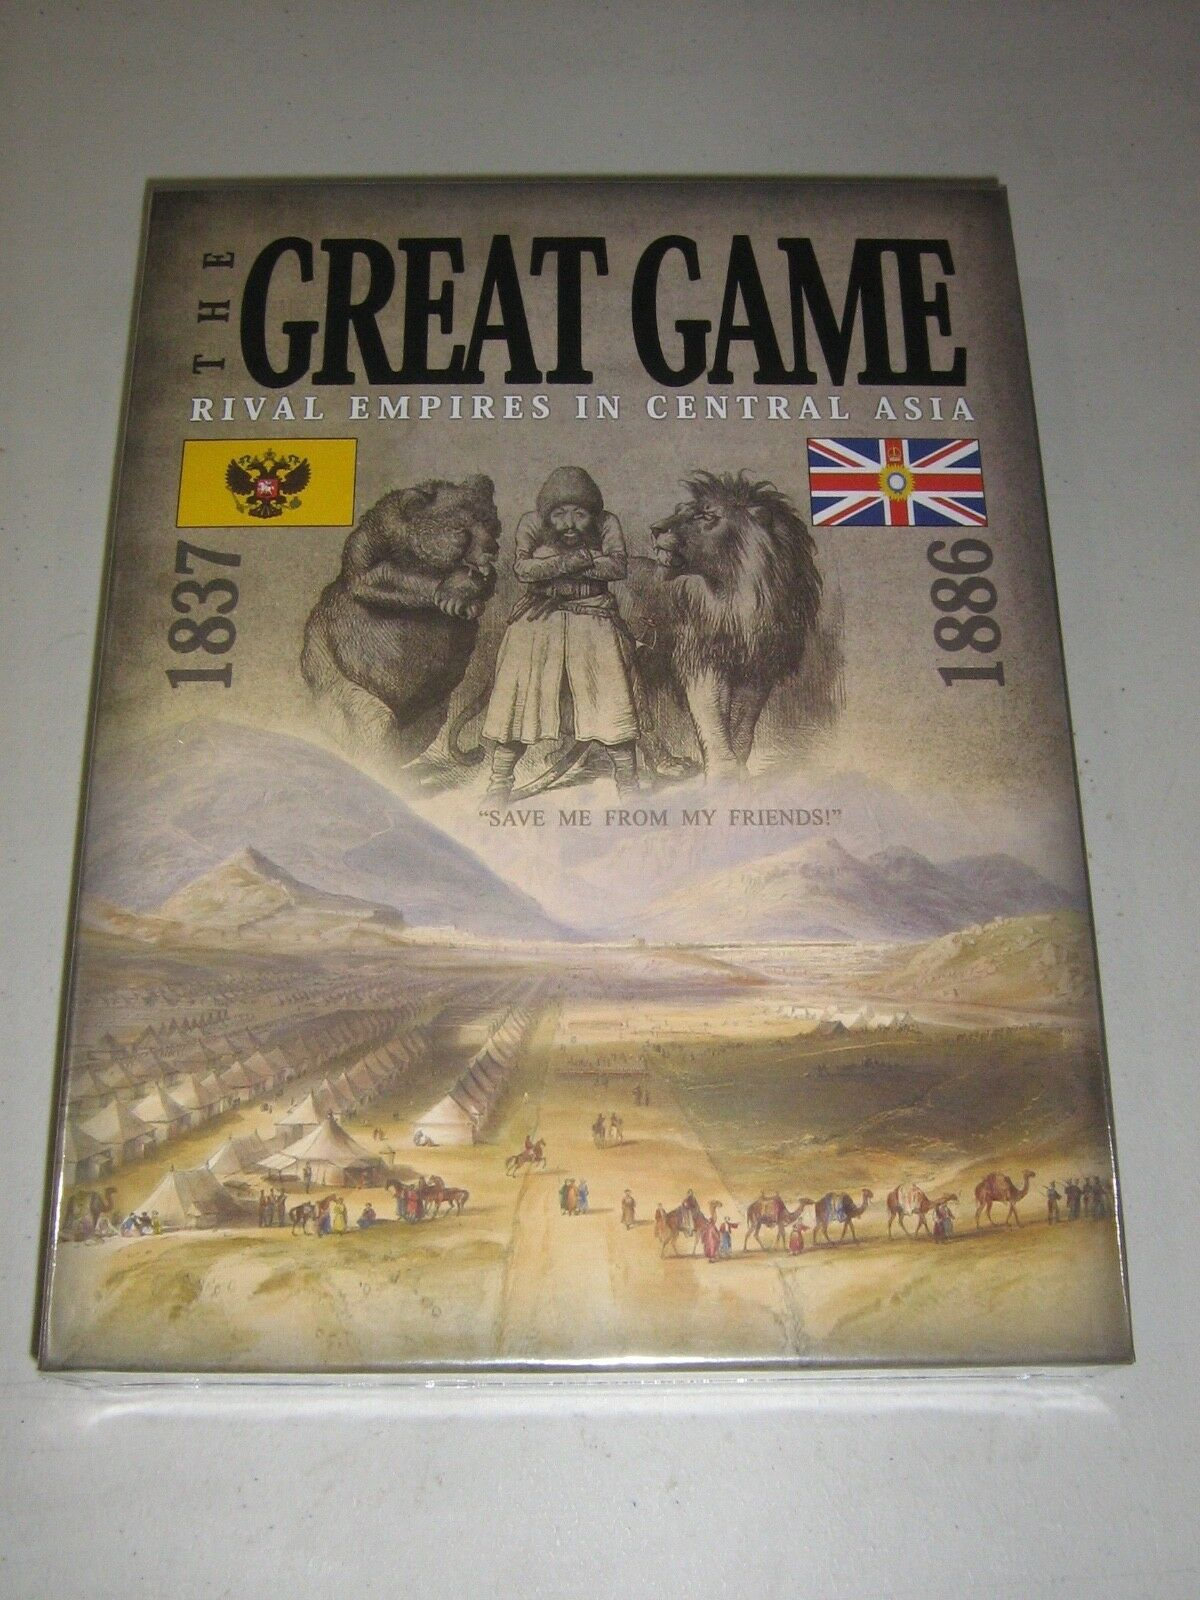 The Great Game: Rival Empires in Central Asia 1837-1886 (New)